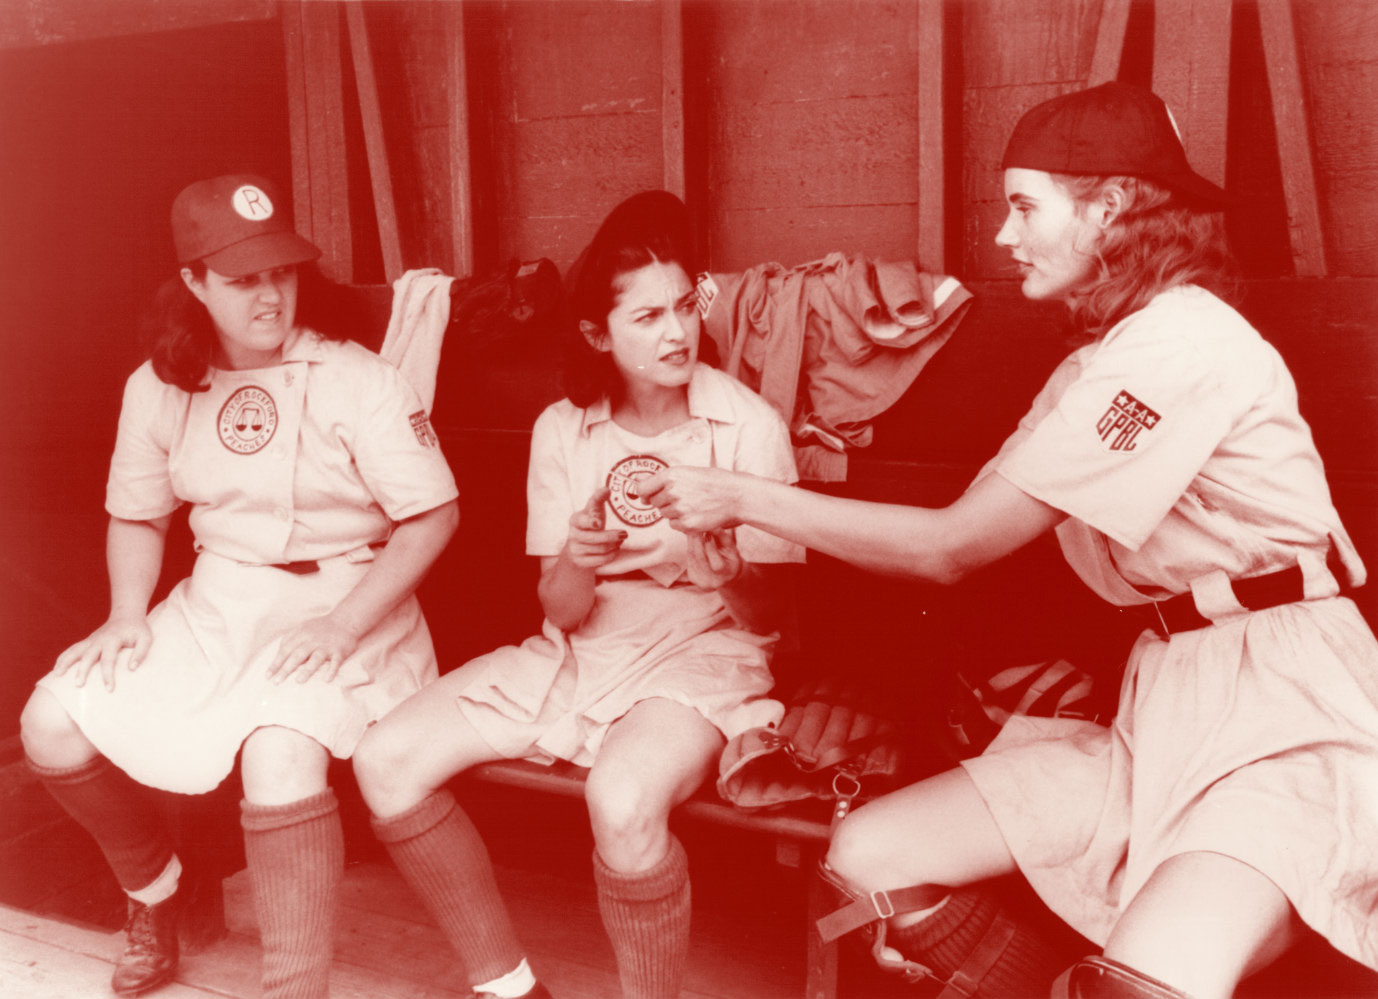 Still from a scene in the film 'A League of Their Own' with Rosie O'Donnell, Madonna and Geena Davis